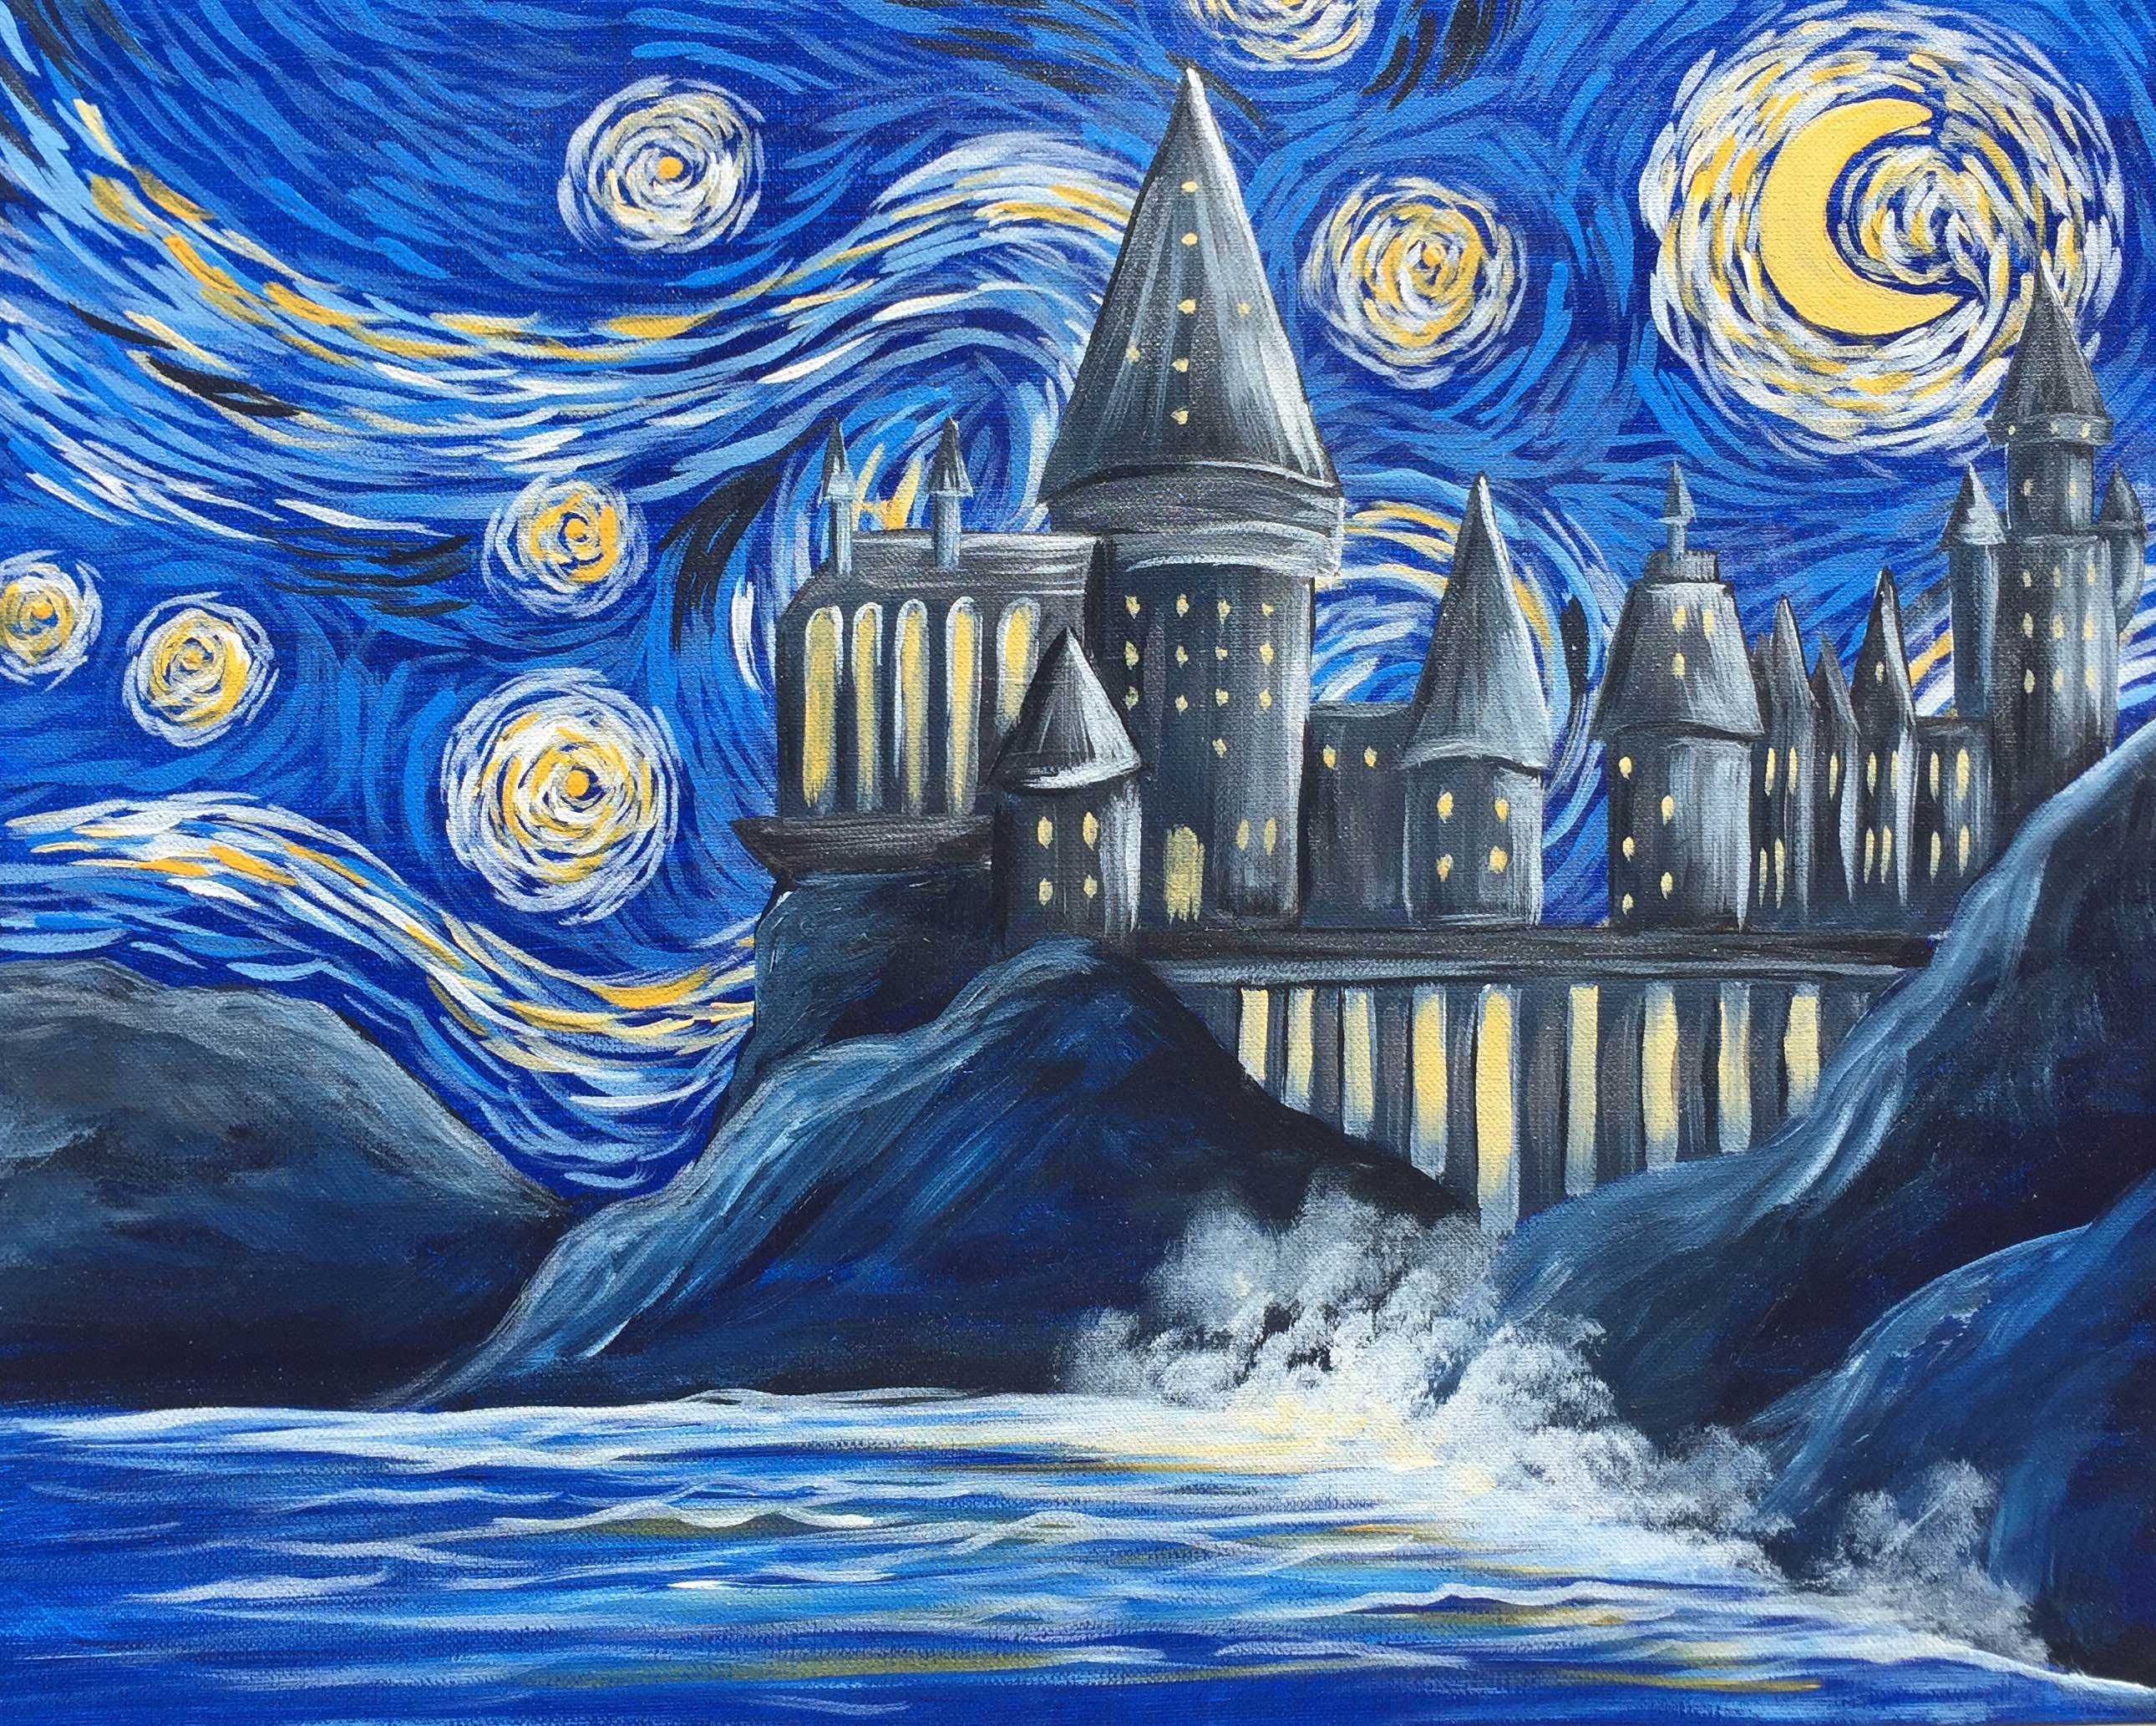 Starry night wizards castle fri dec 16 7pm at spokane for Paint night home parties